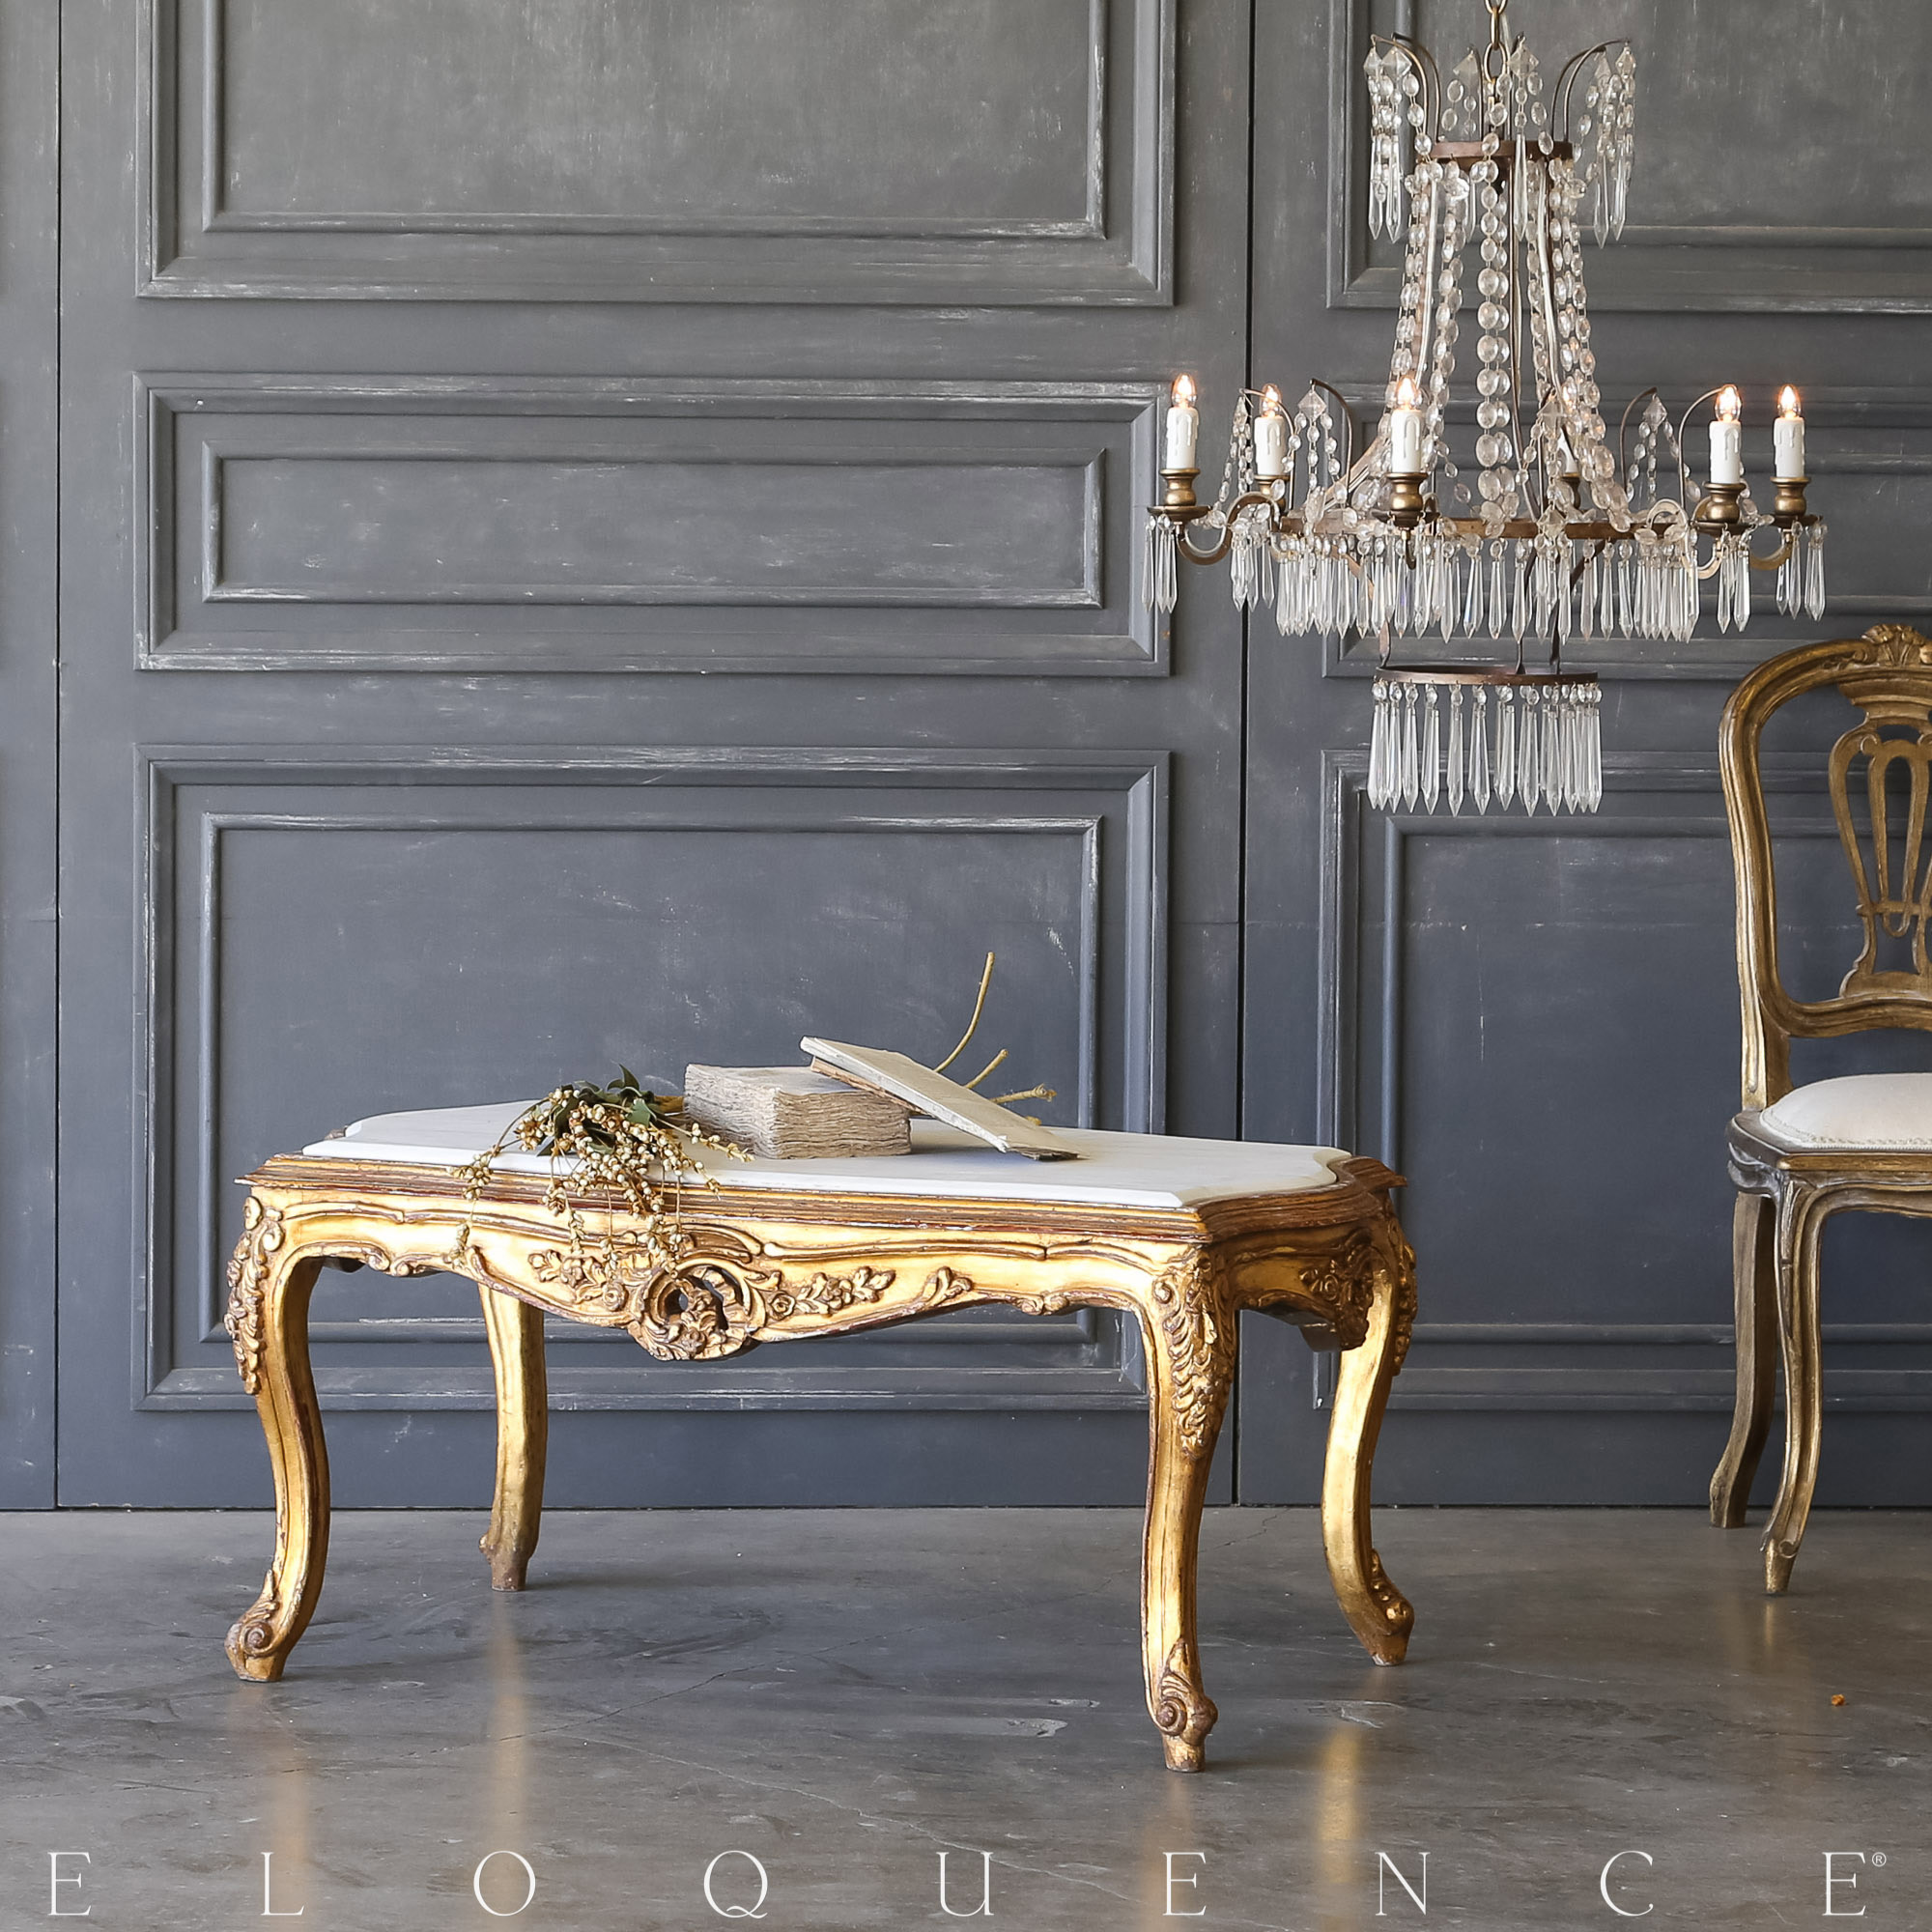 Eloquence® Vintage Regal Gold Coffee Table: 1940